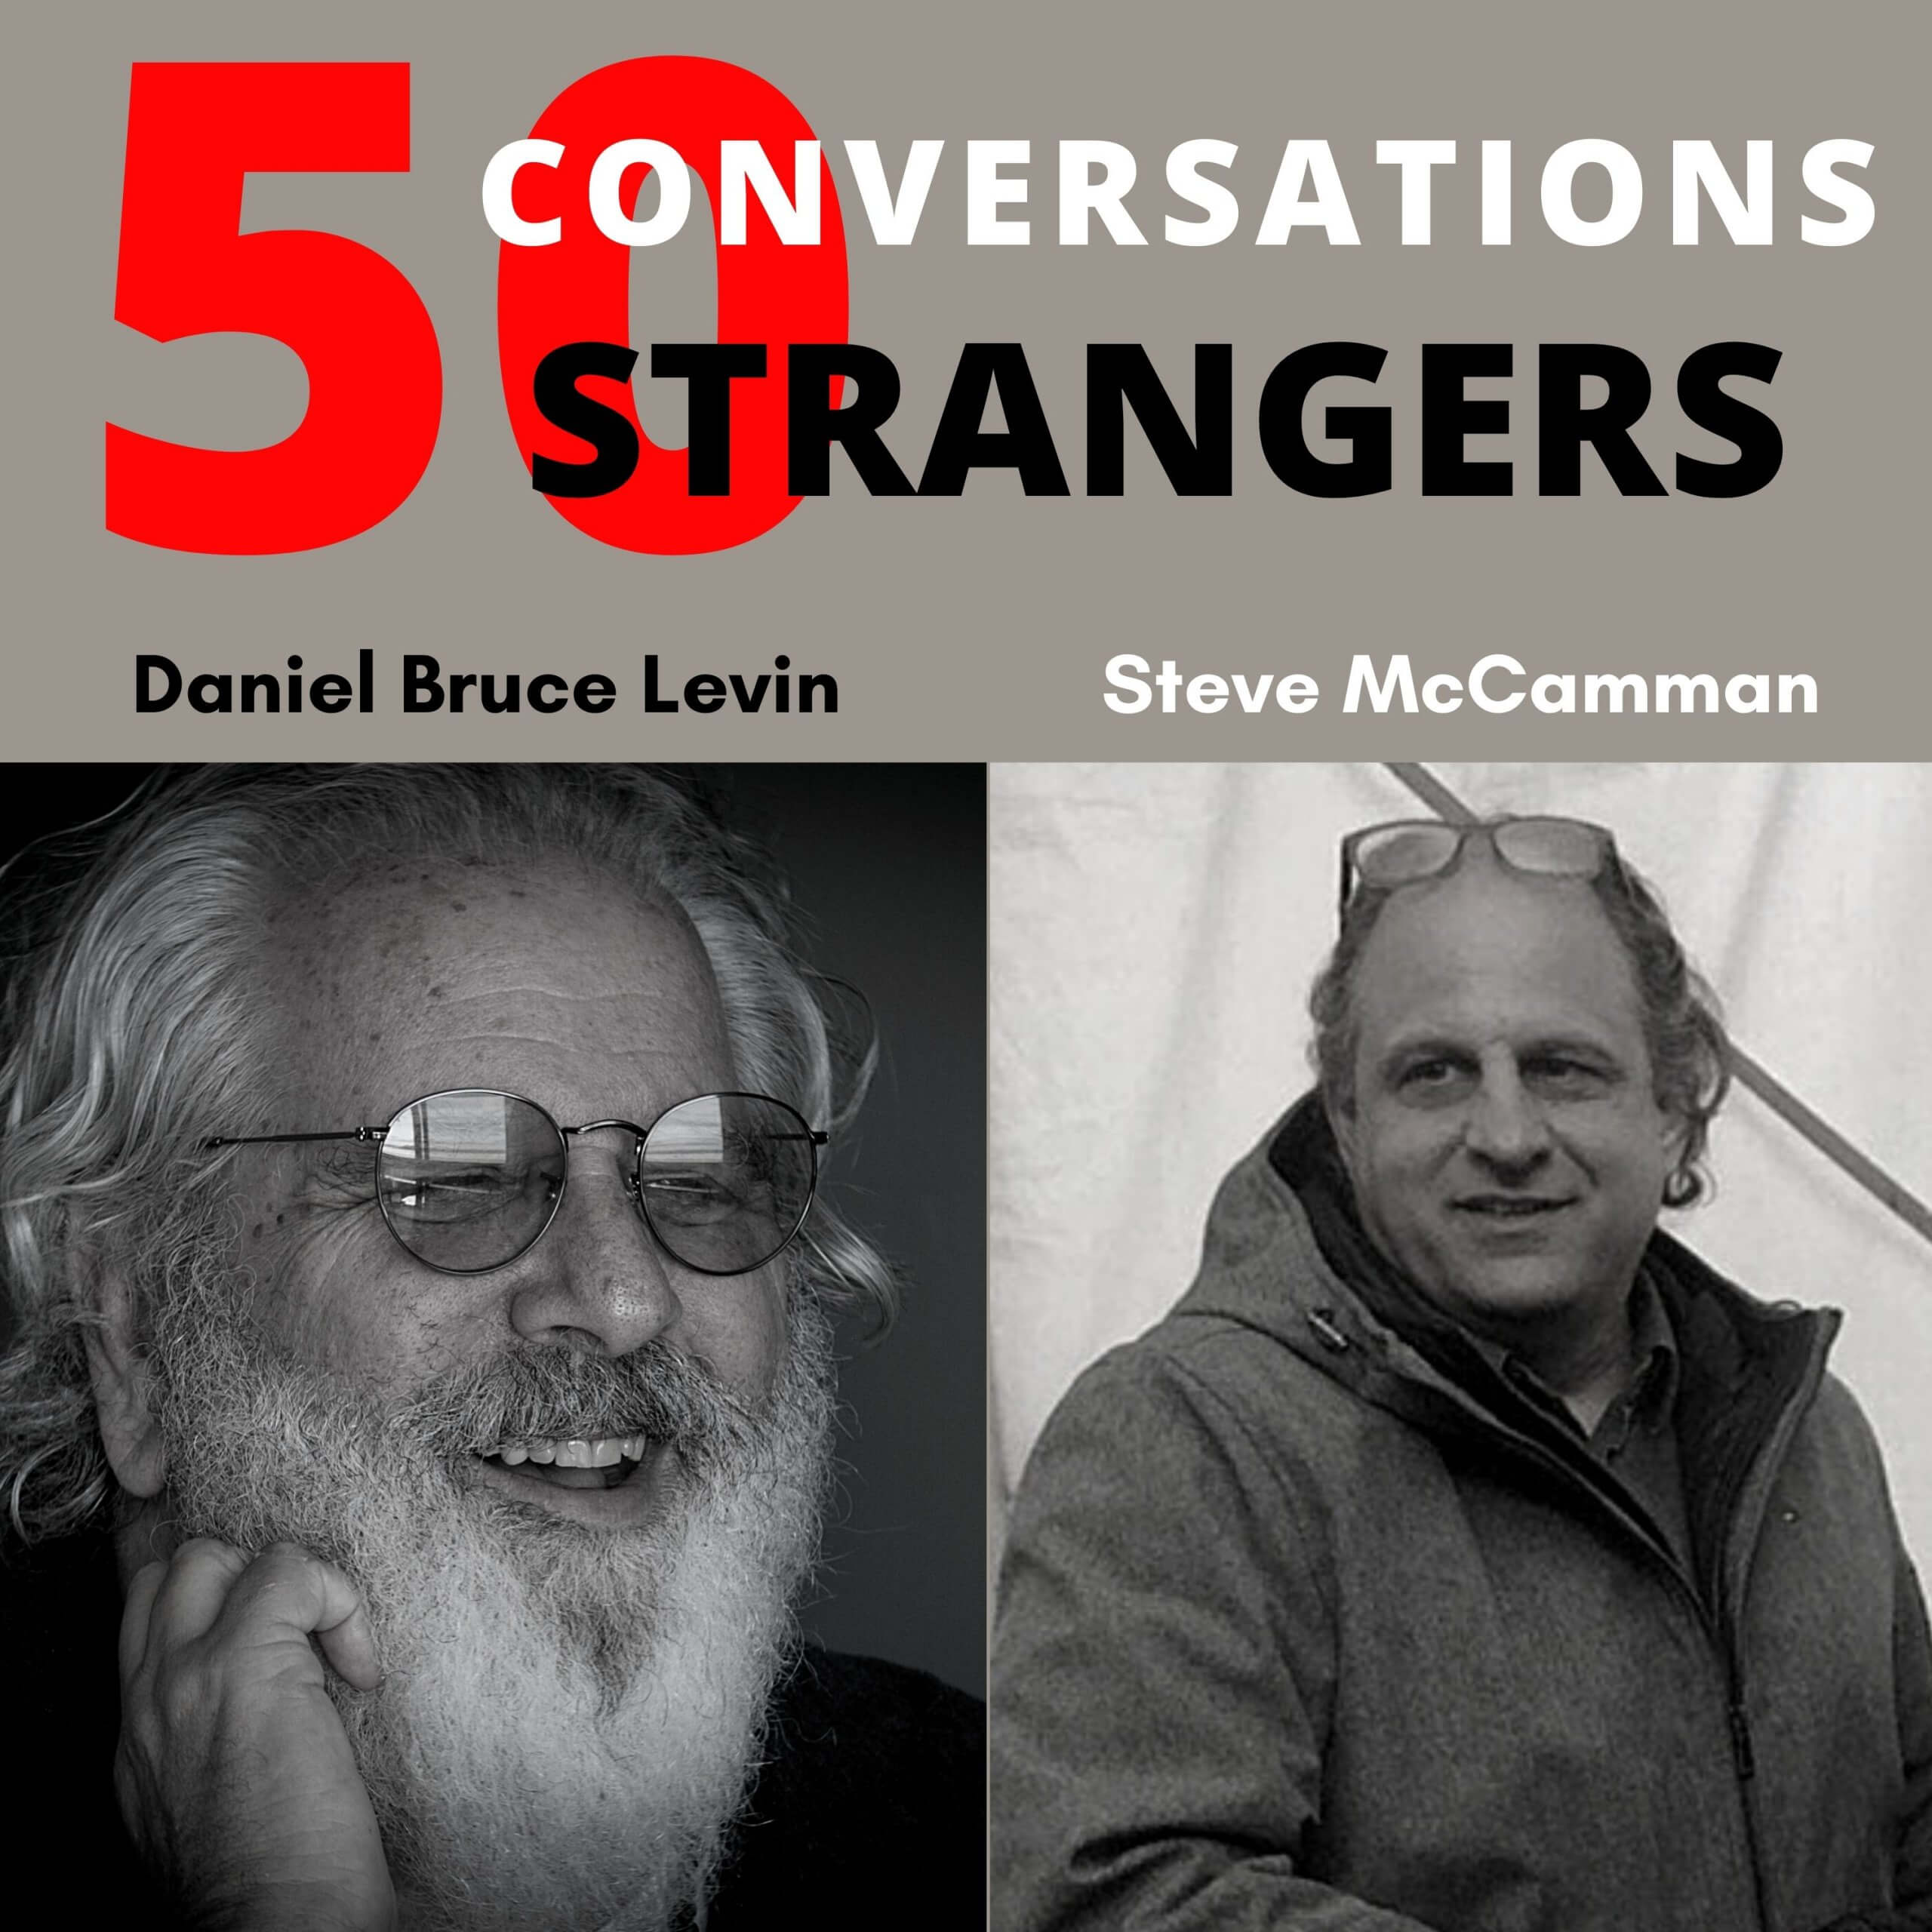 50 Conversations with 50 Strangers with Stephen McCamman